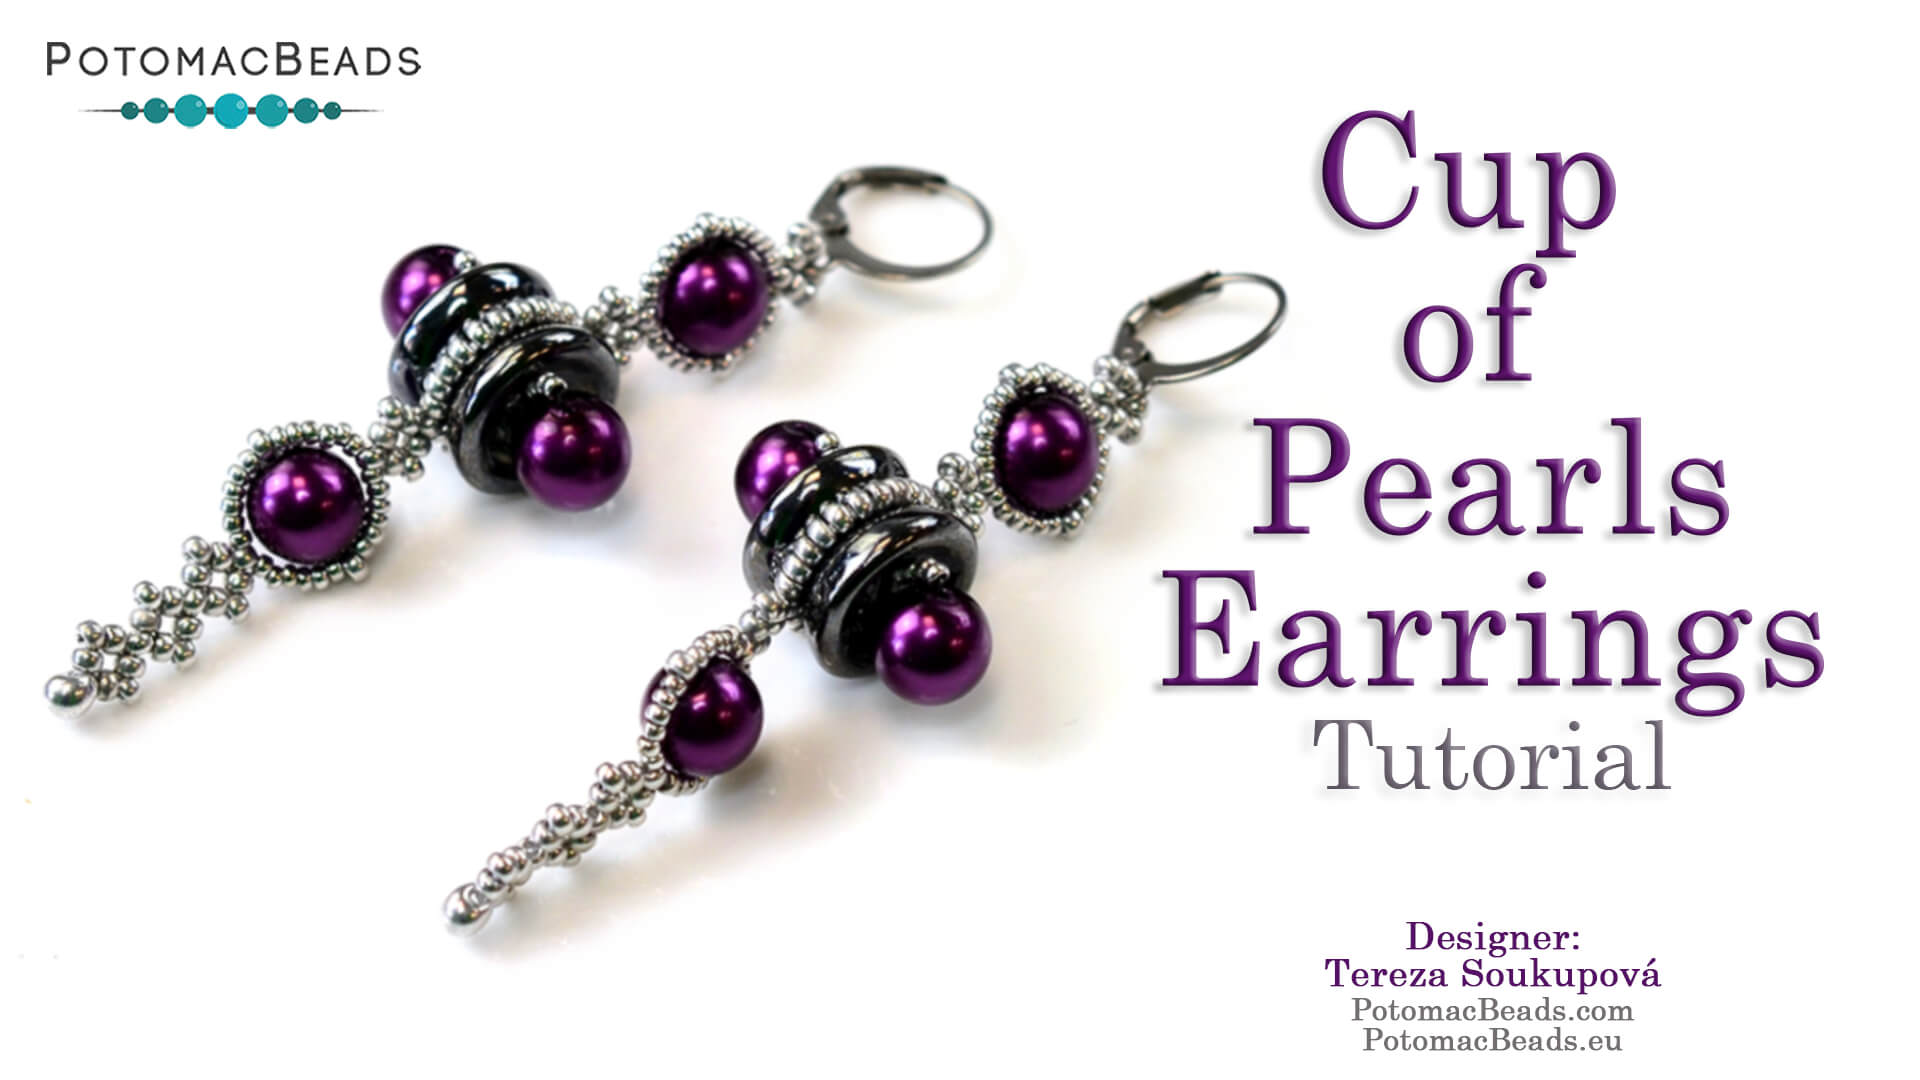 How to Bead Jewelry / Videos Sorted by Beads / Pearl Videos (Czech, Freshwater, Potomac Pearls) / Cup of Pearls Earrings Tutorial